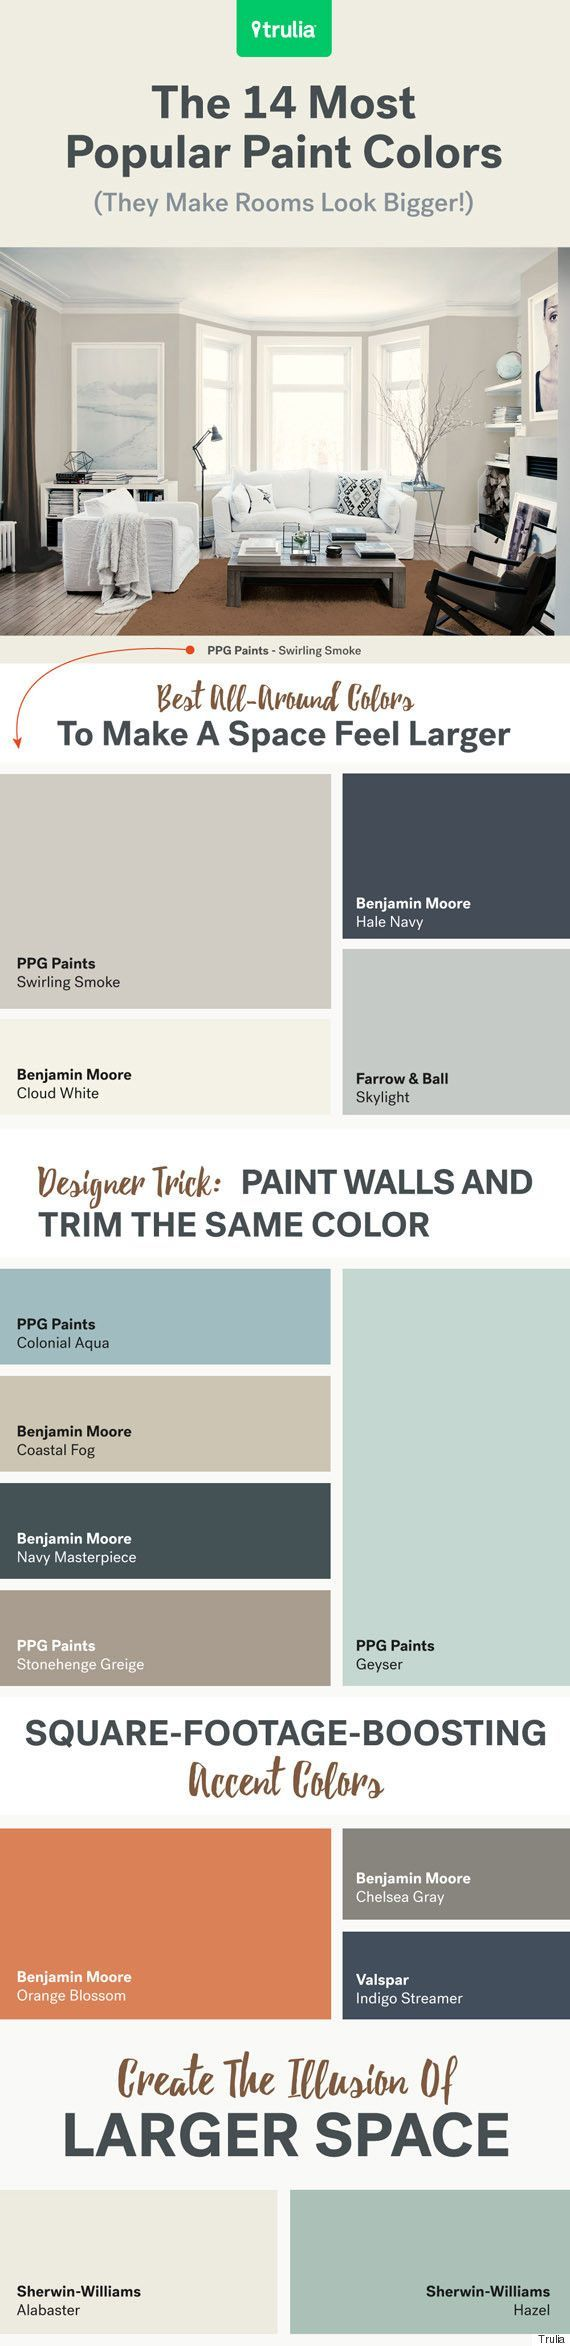 Idée décoration et relooking salle à manger Tendance  Image    Description  The 14 Most Popular Paint Colors (They Make A Room Look Bigger!)